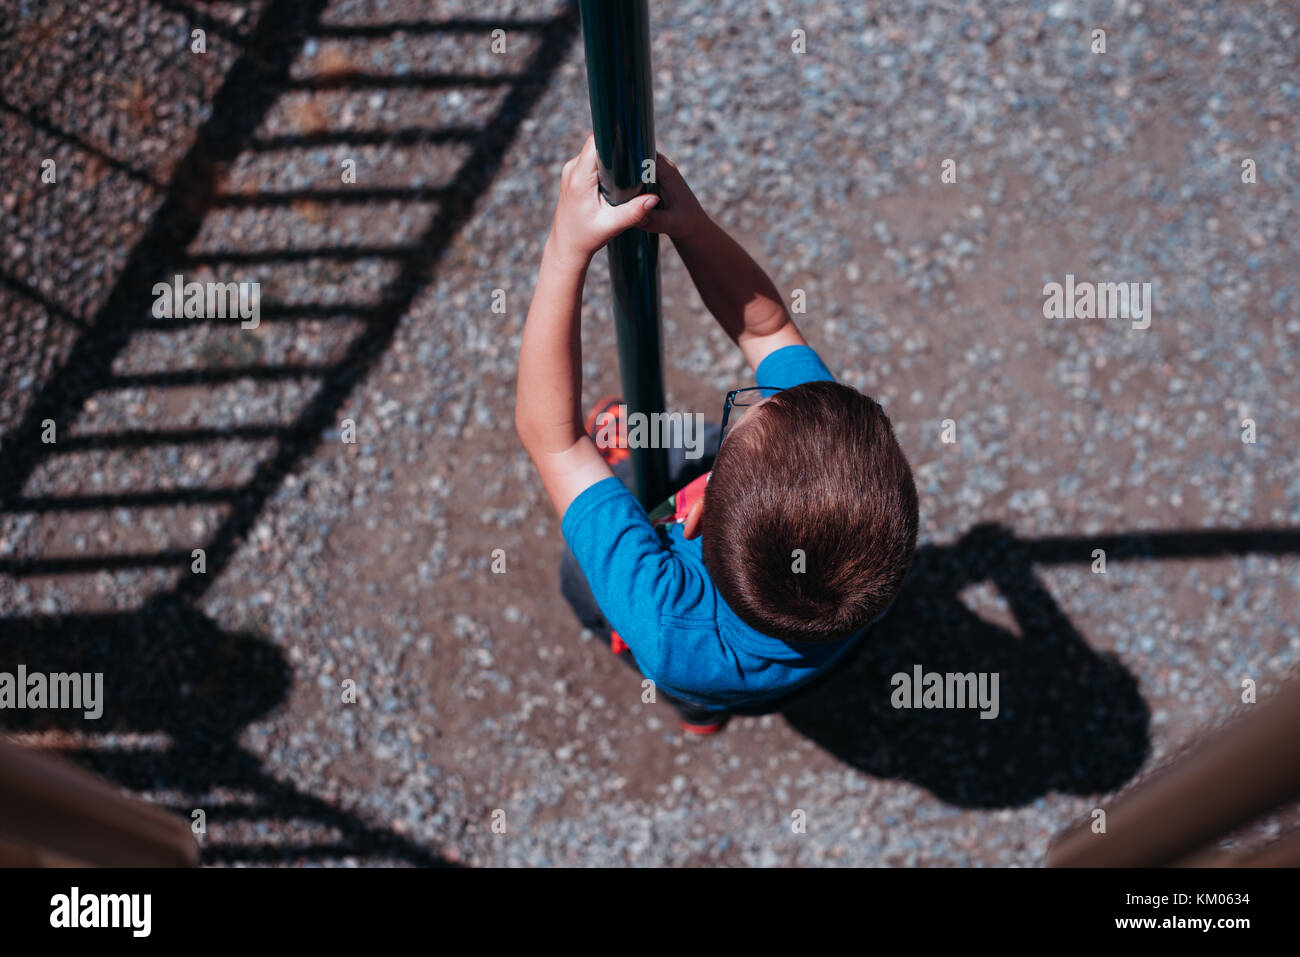 A child slides down a sliding pole at a playground. - Stock Image